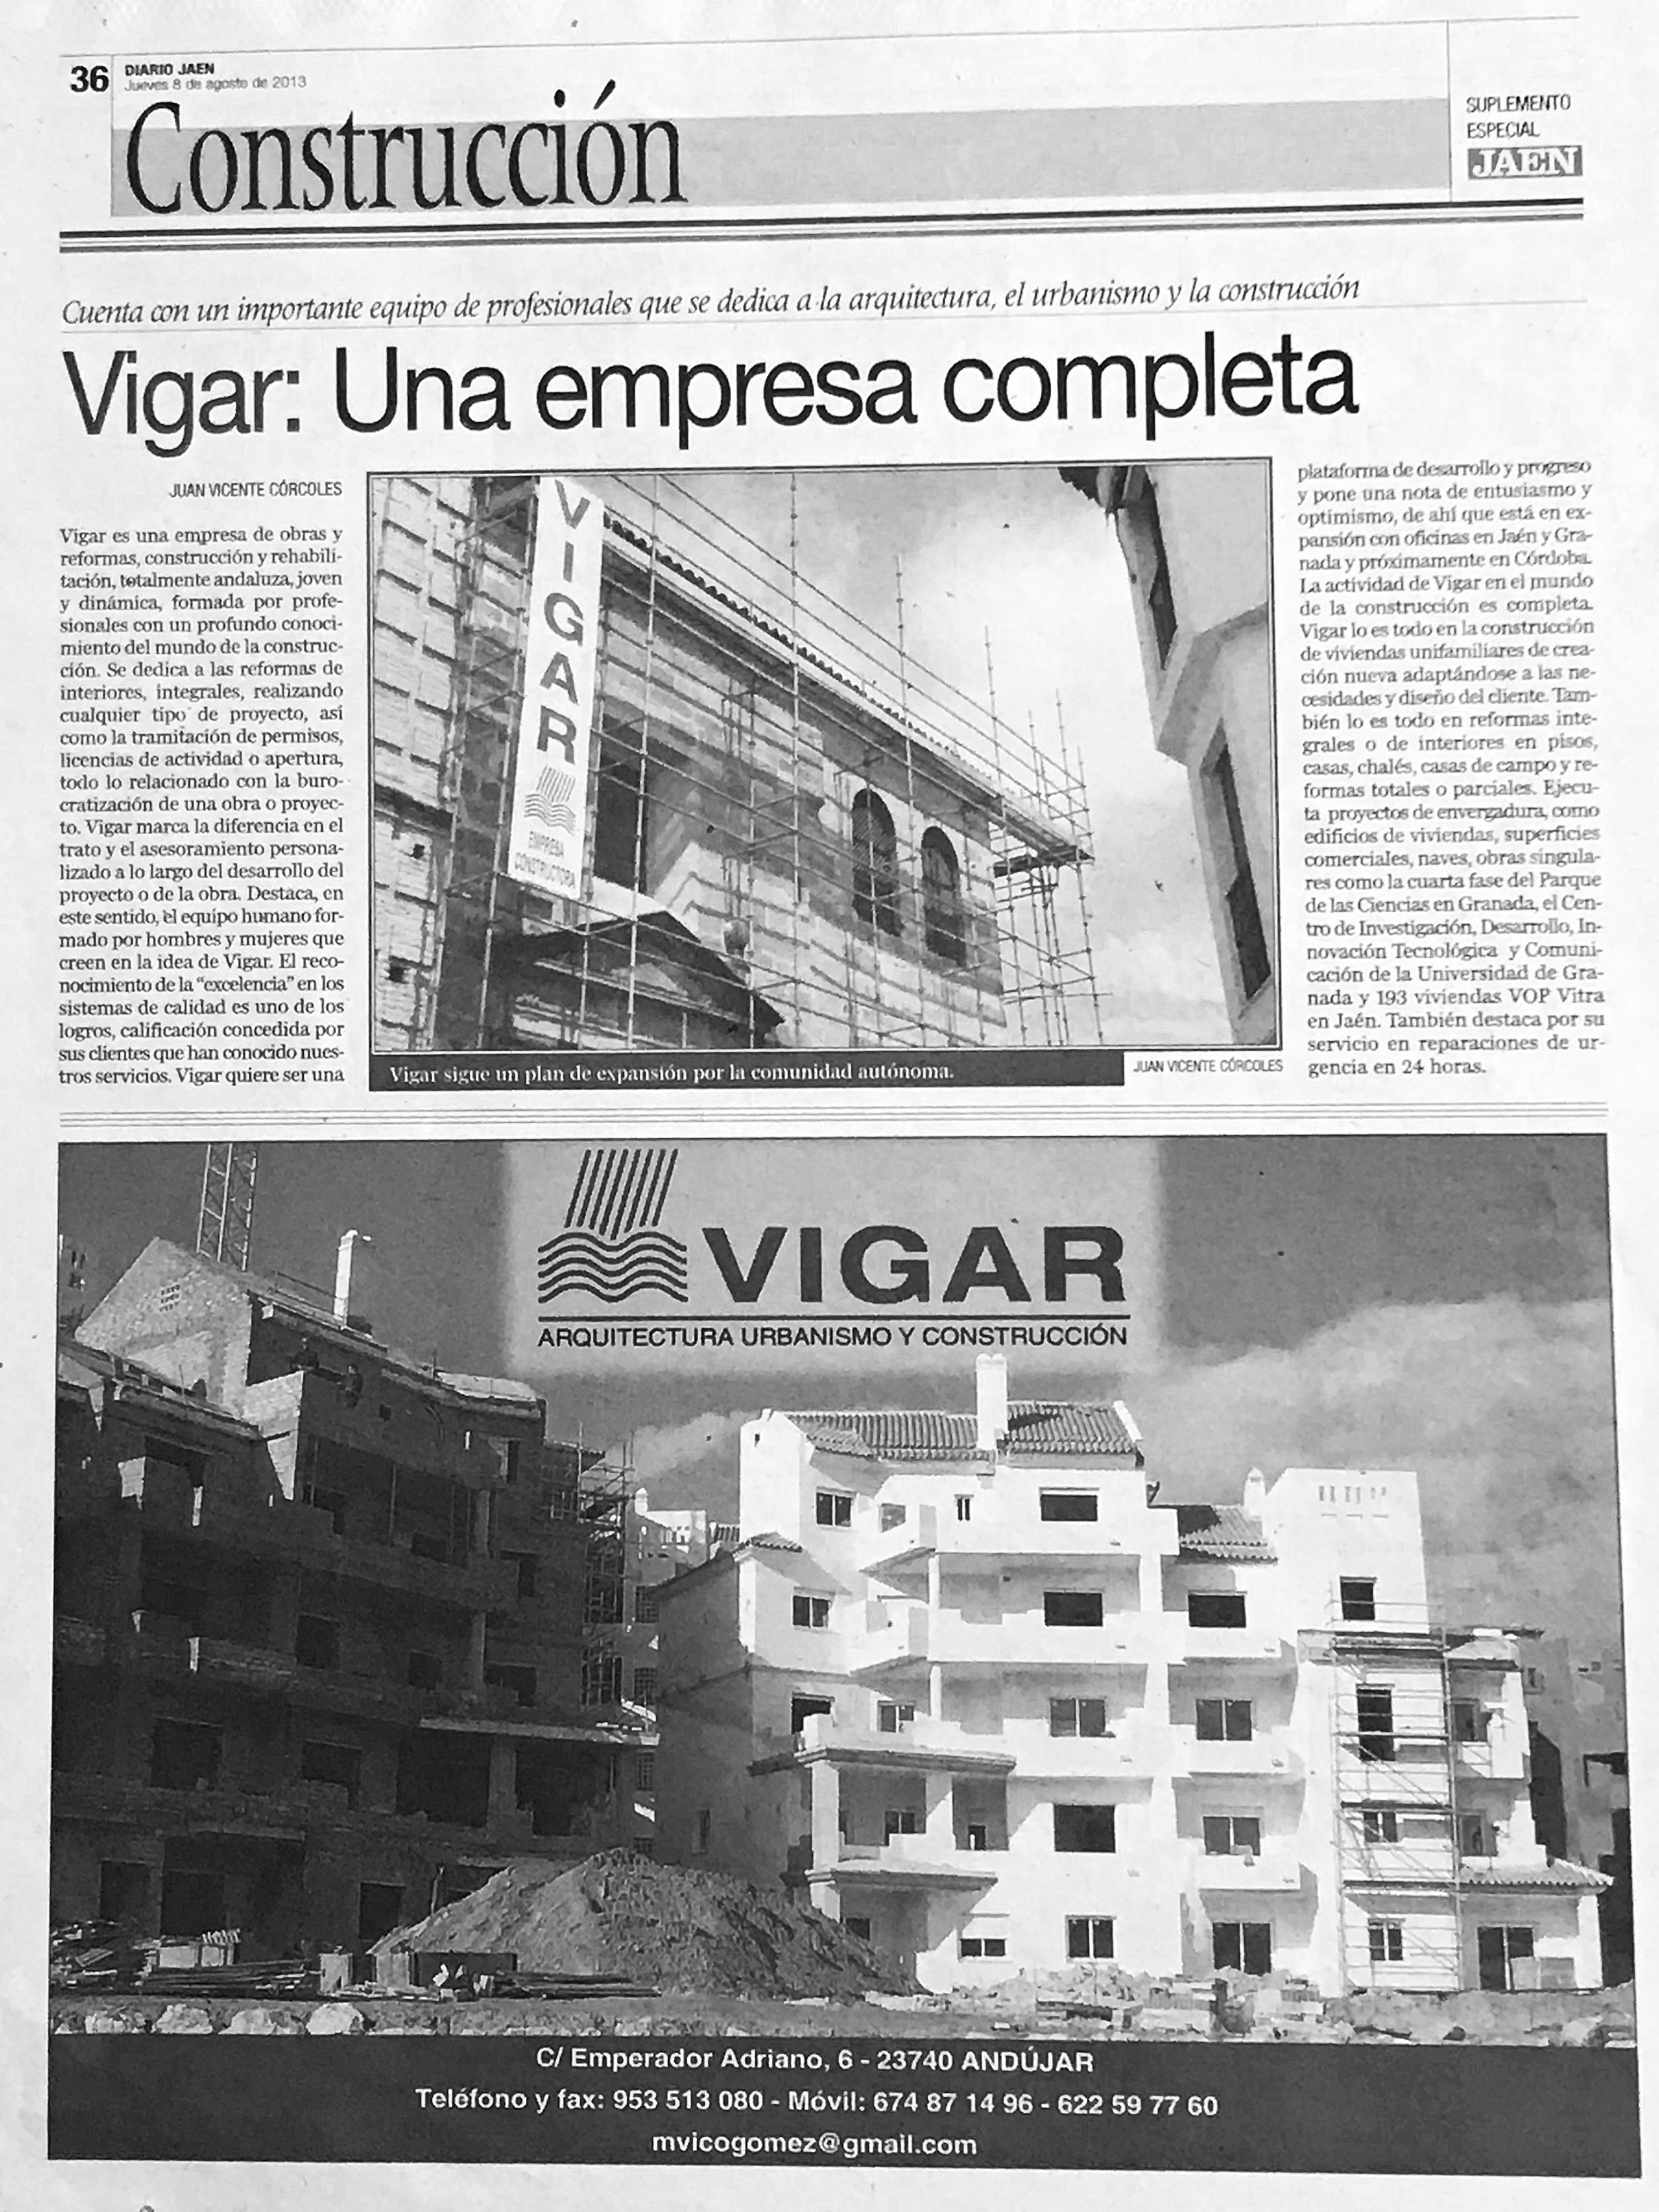 noticia-vigar-diario-jaen